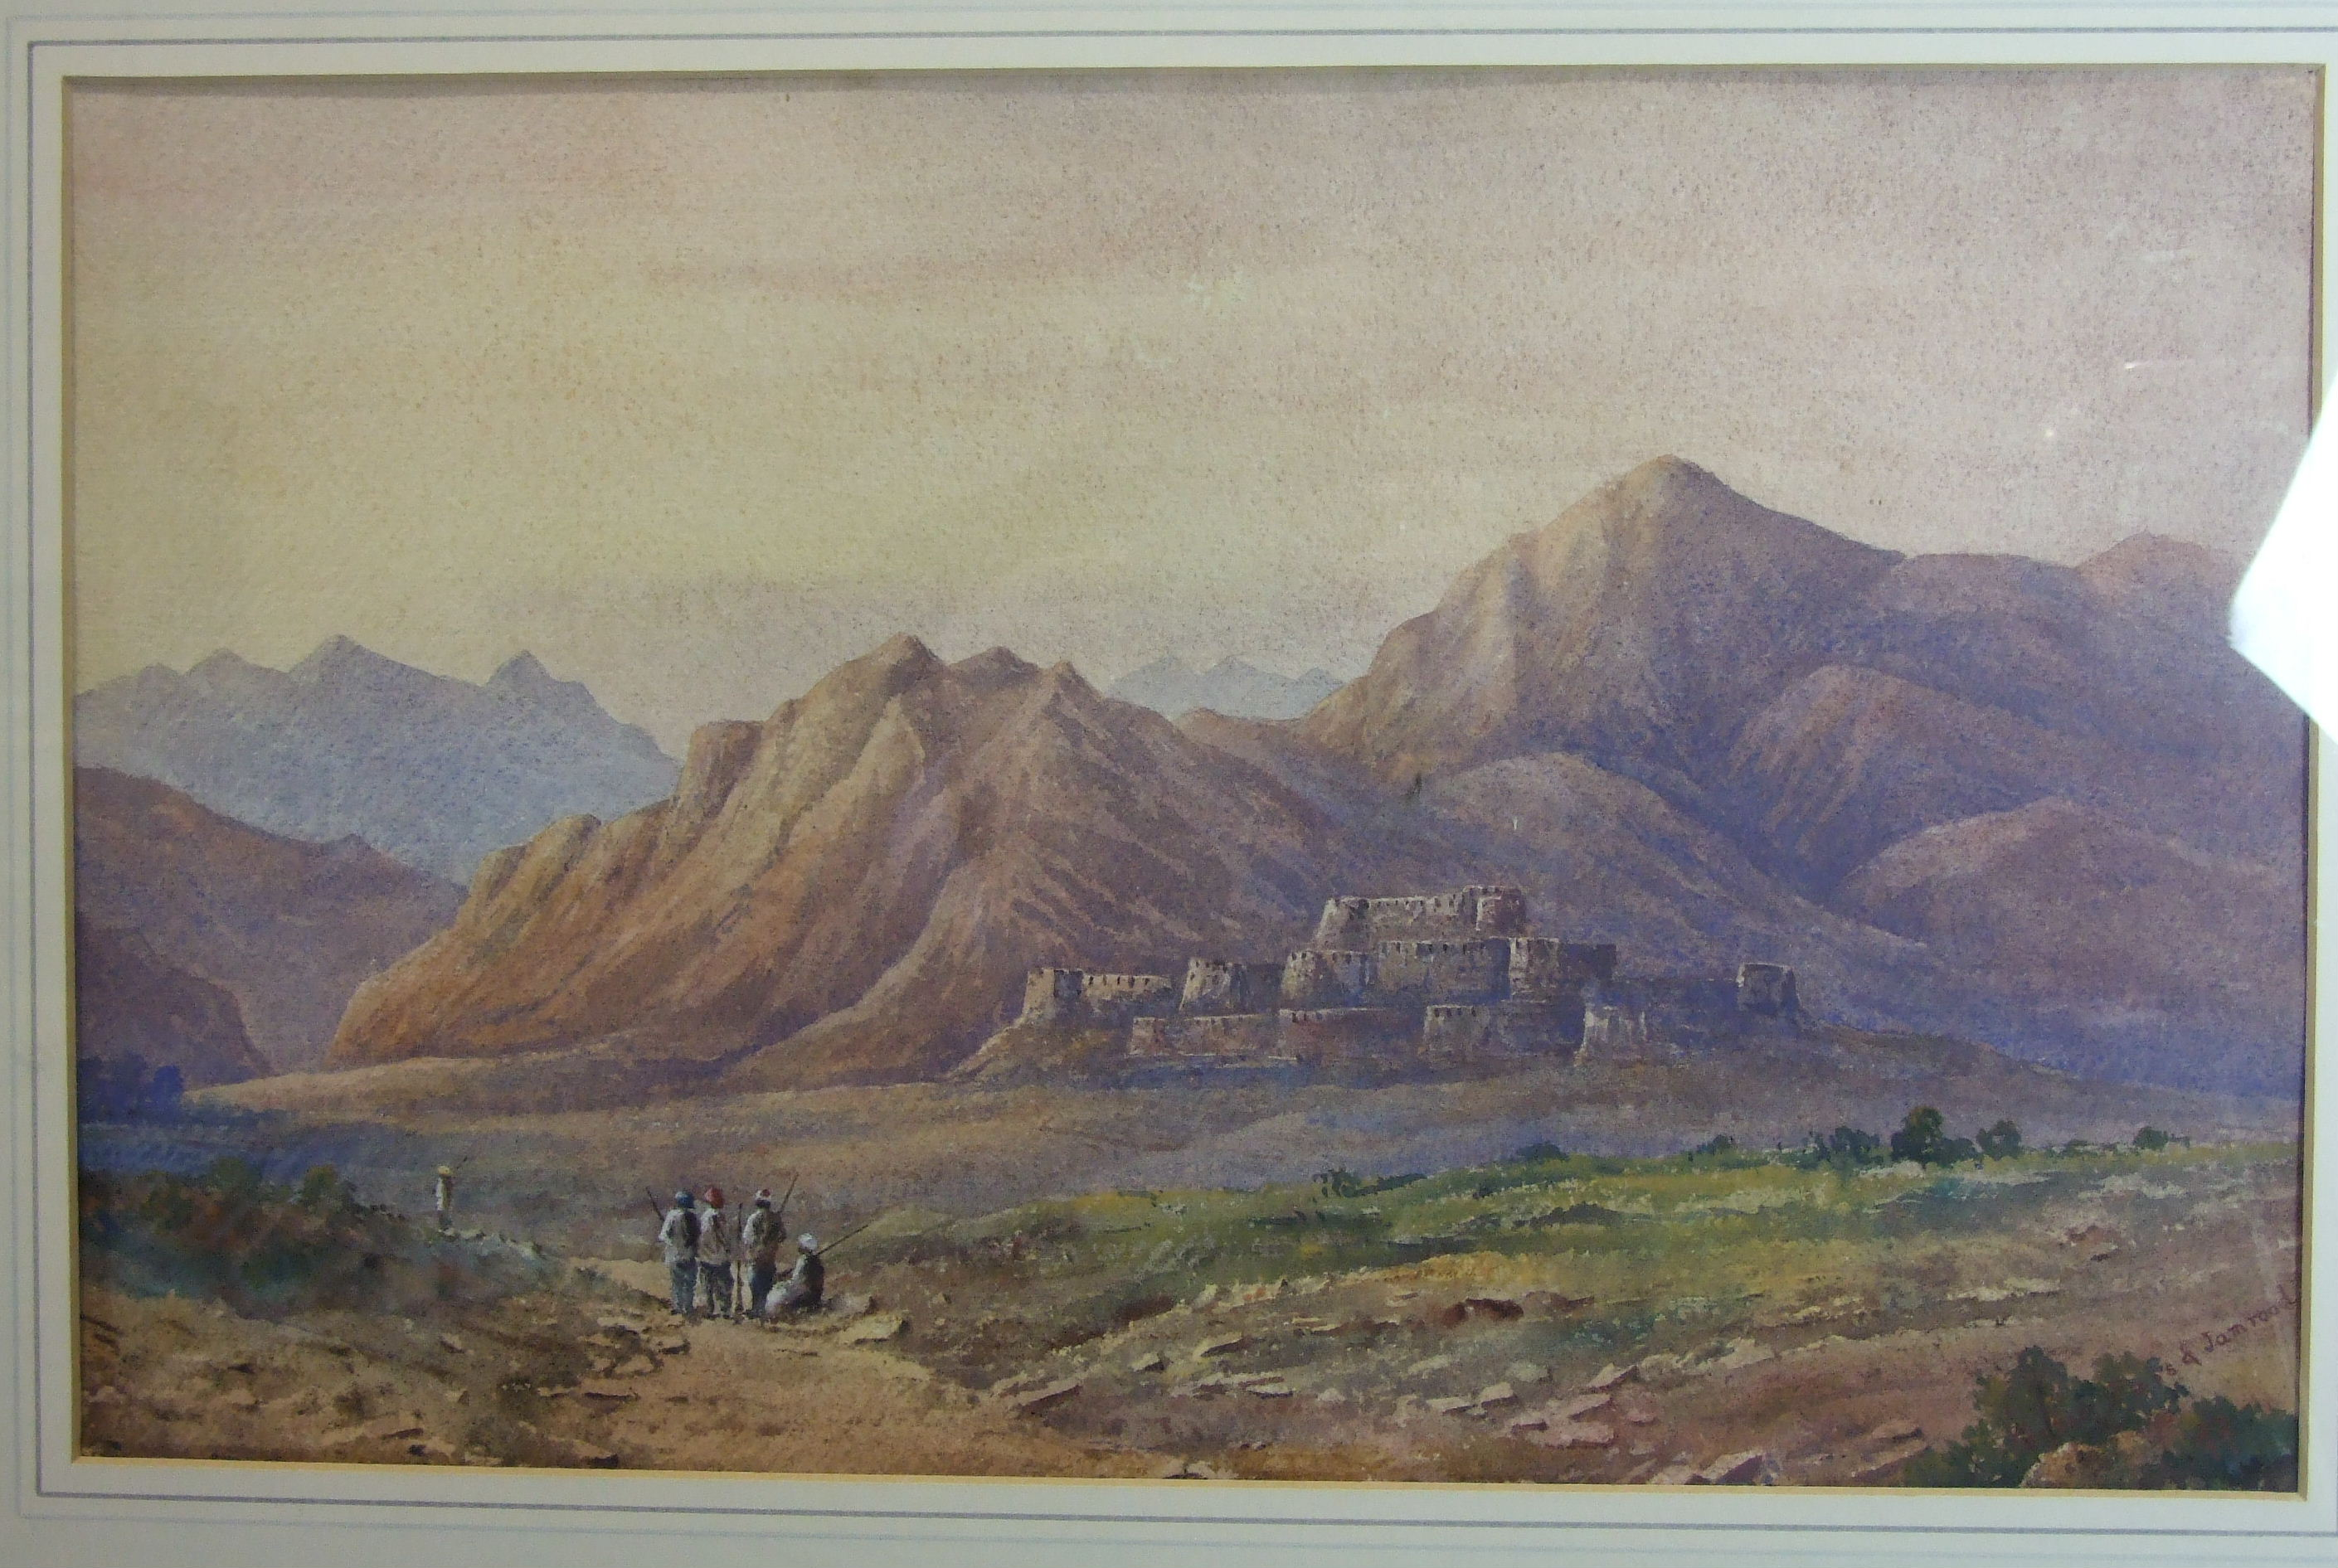 Lot 26 - C R KHYBER PASS AND JAMROOD Watercolour, titled and signed with monogram, 28 x 44cm.